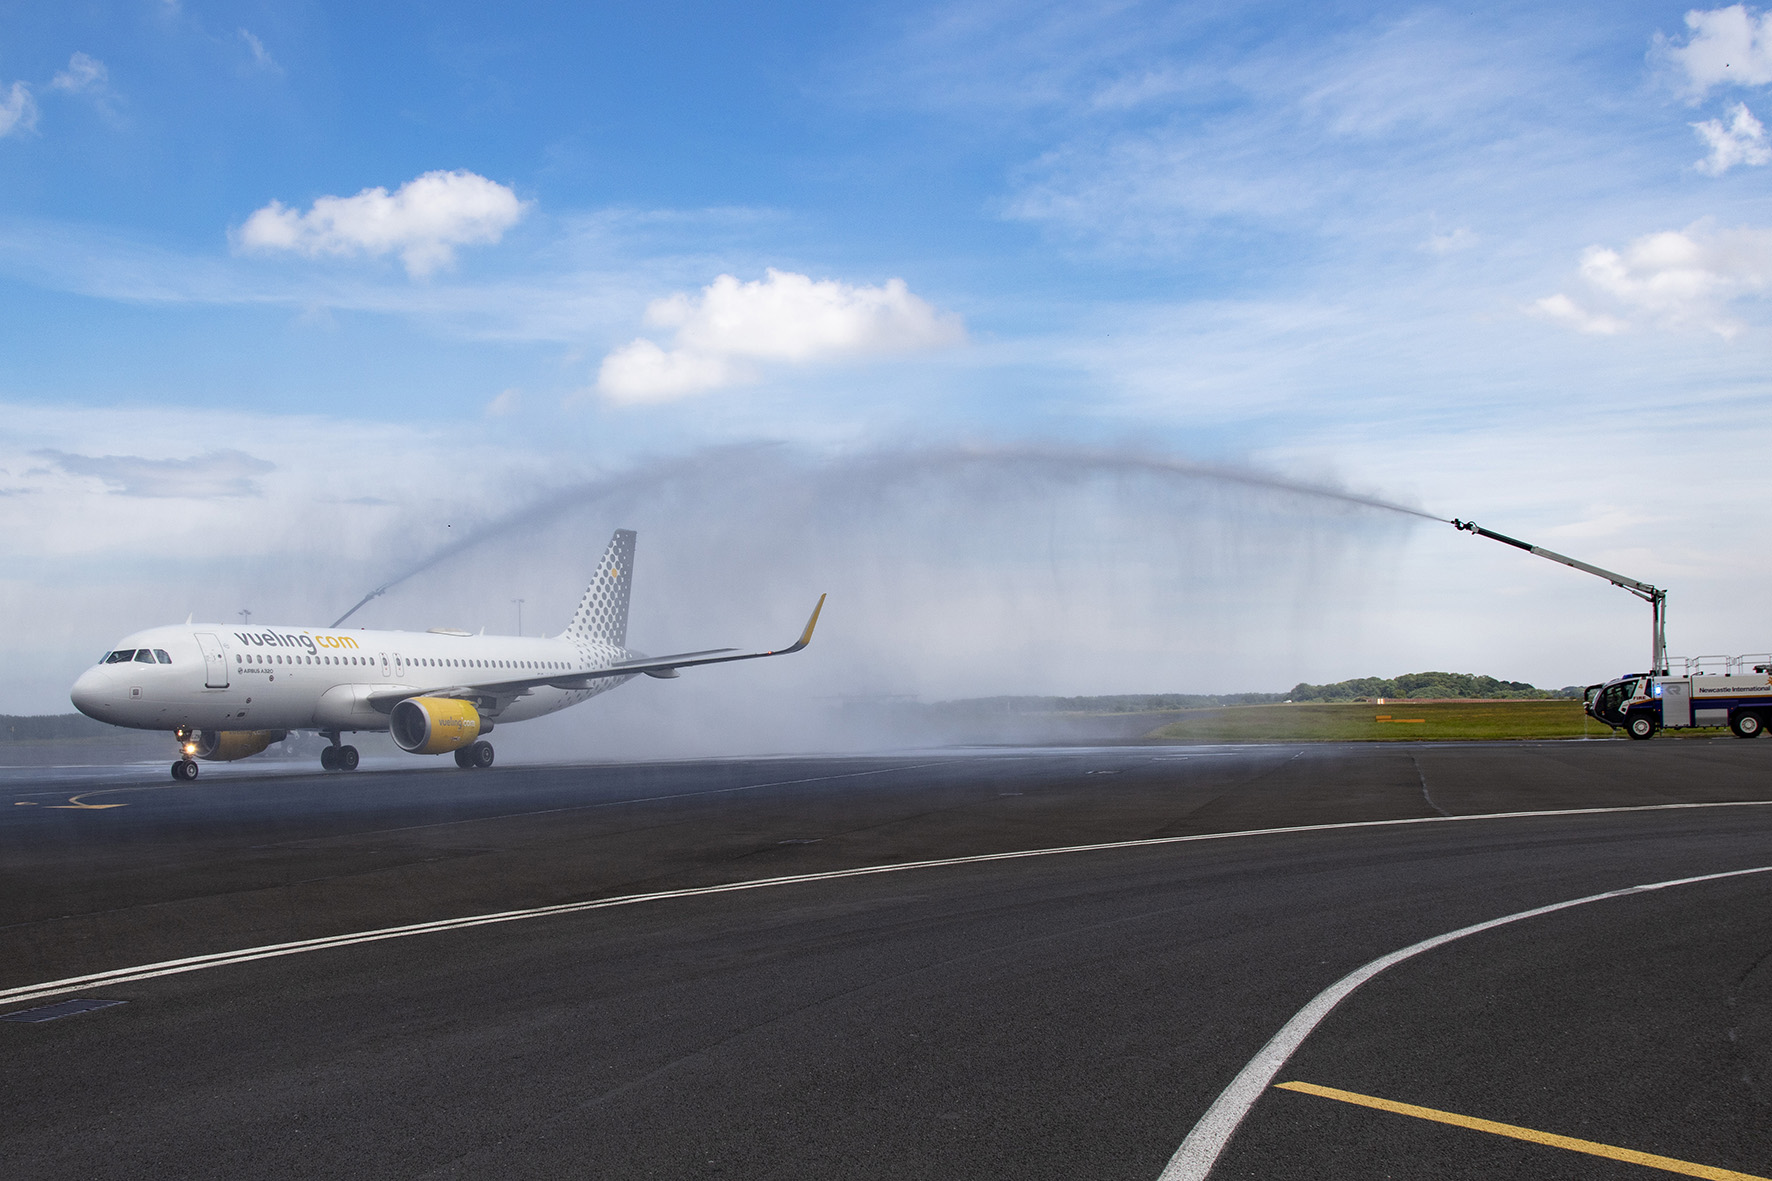 Airplane on runway with large water sprinklers on either side showering the plane as it comes in